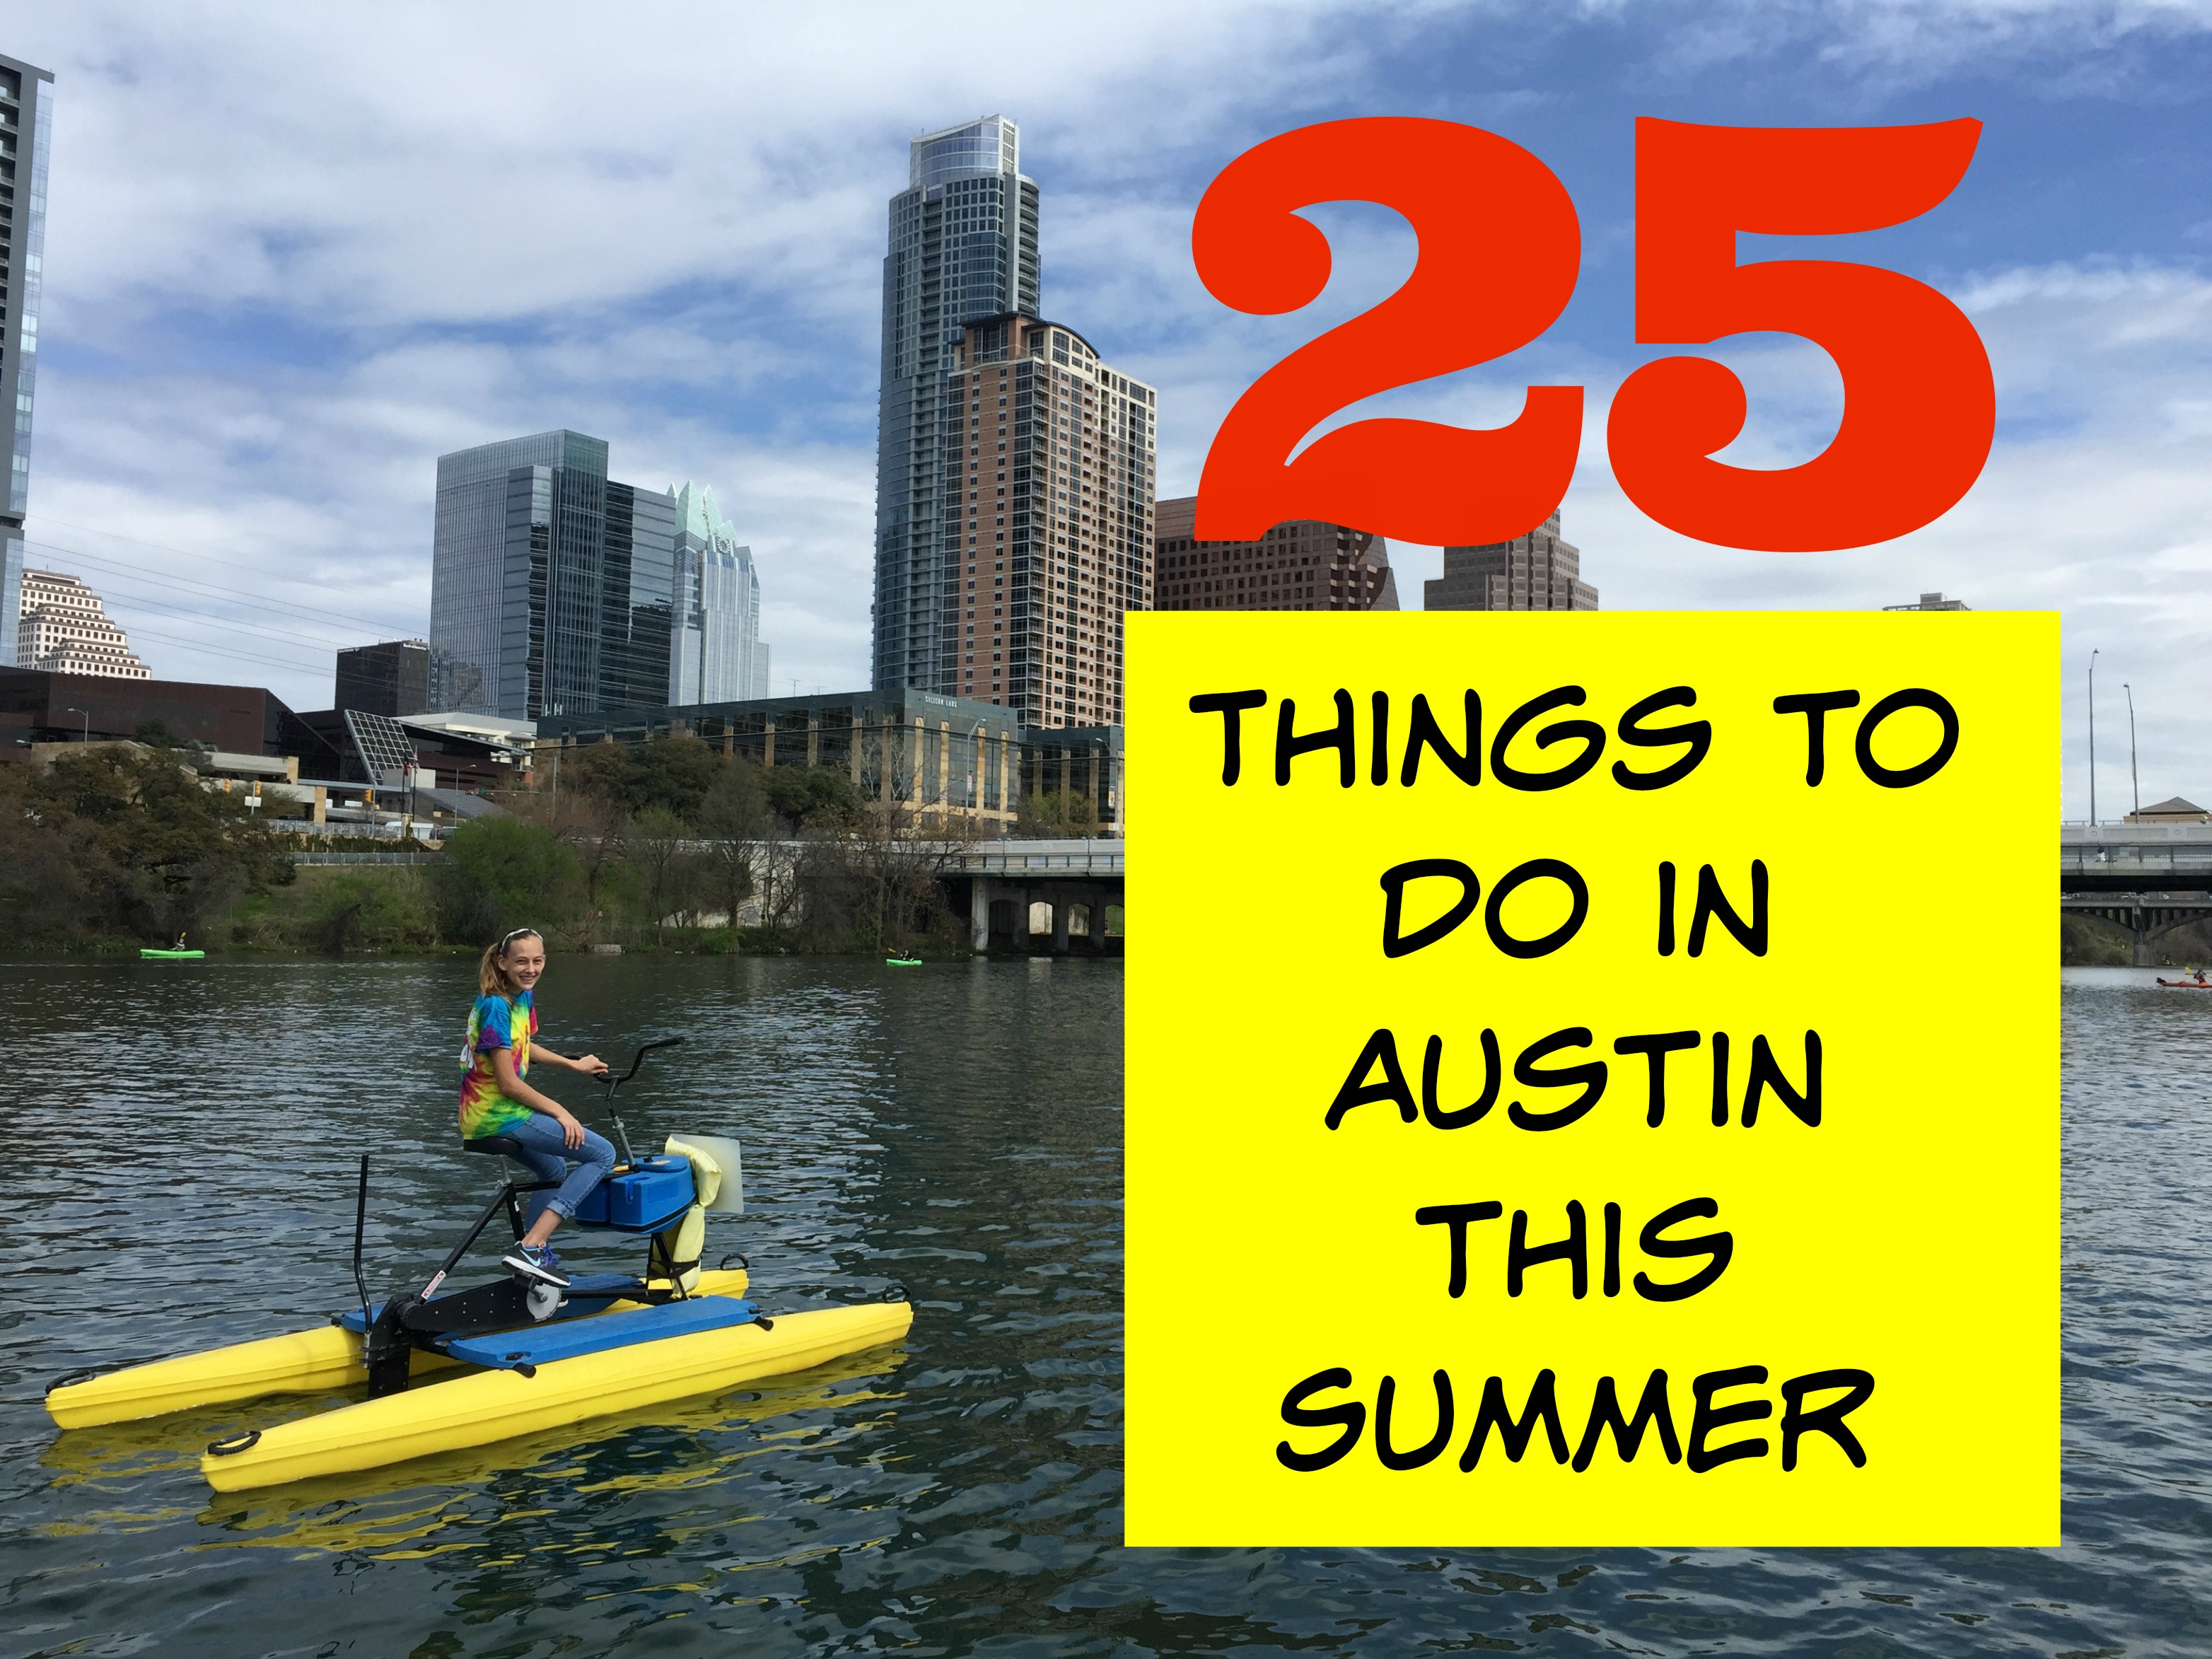 25 things to do in austin this summer 2017 events